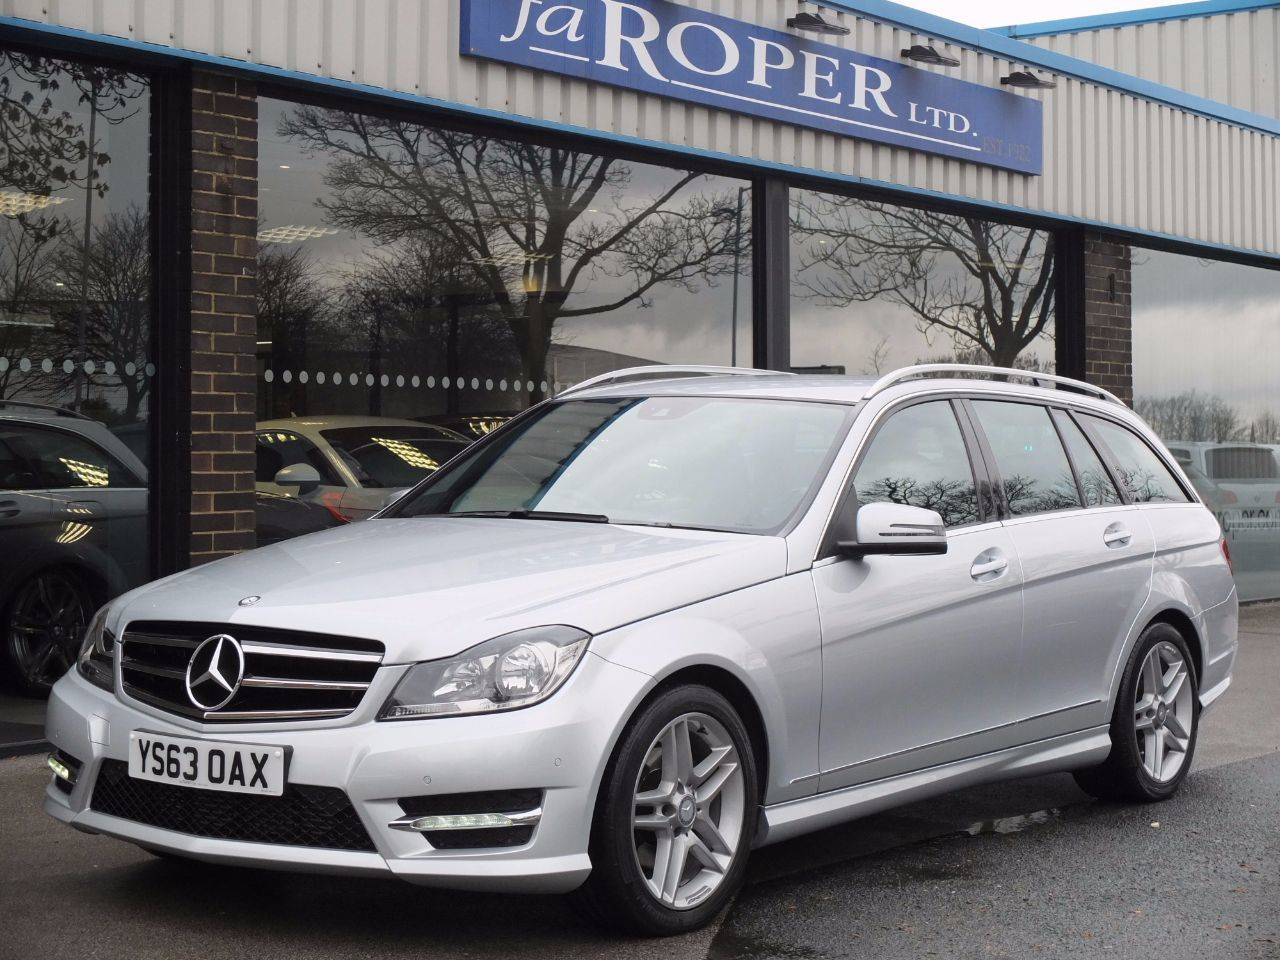 Mercedes-Benz C Class 2.1 C250 CDI AMG Sport Edition Estate Auto (Premium Pack) Estate Diesel Iridium Silver MetallicMercedes-Benz C Class 2.1 C250 CDI AMG Sport Edition Estate Auto (Premium Pack) Estate Diesel Iridium Silver Metallic at fa Roper Ltd Bradford